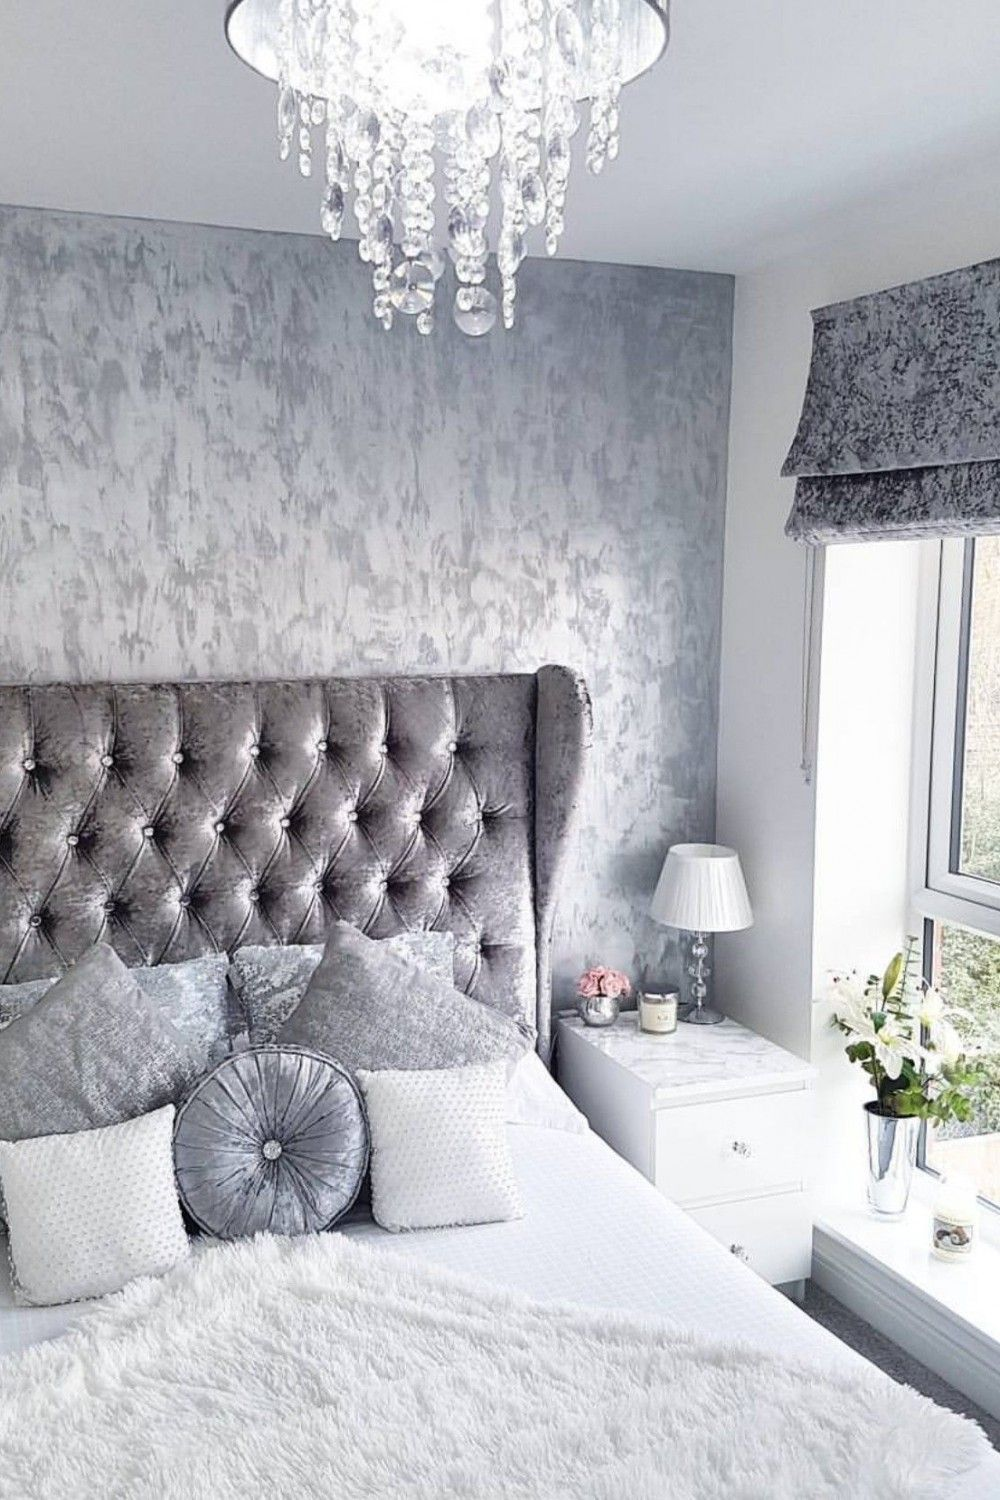 Pin By Khaay Ellis On Decor In 2020 With Images Silver Bedroom White Gold Bedroom Silver Decor Living Room